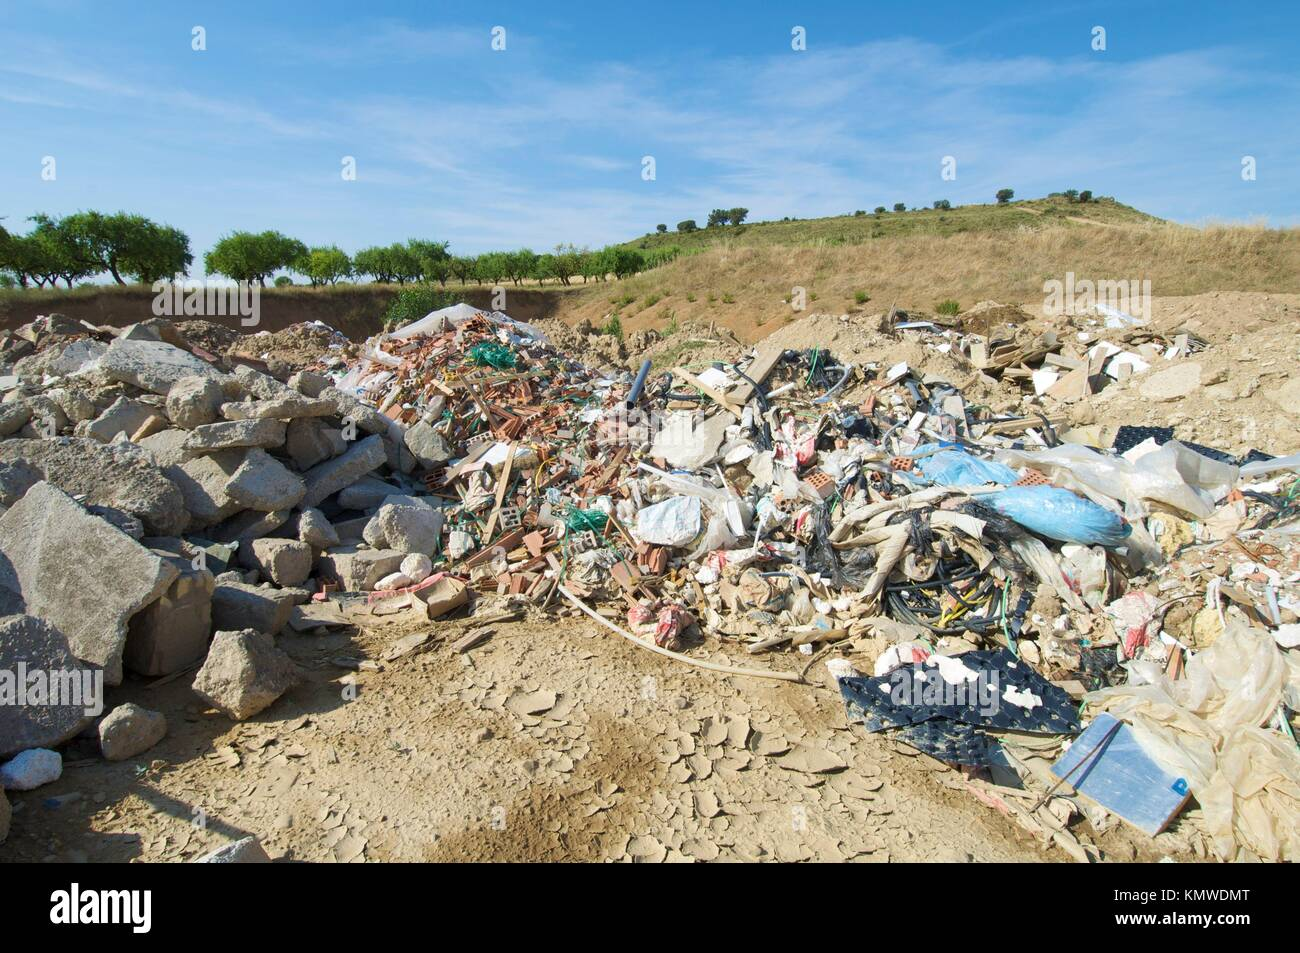 landfill in a nature place, Tierz, Huesca, Aragon, Spain - Stock Image